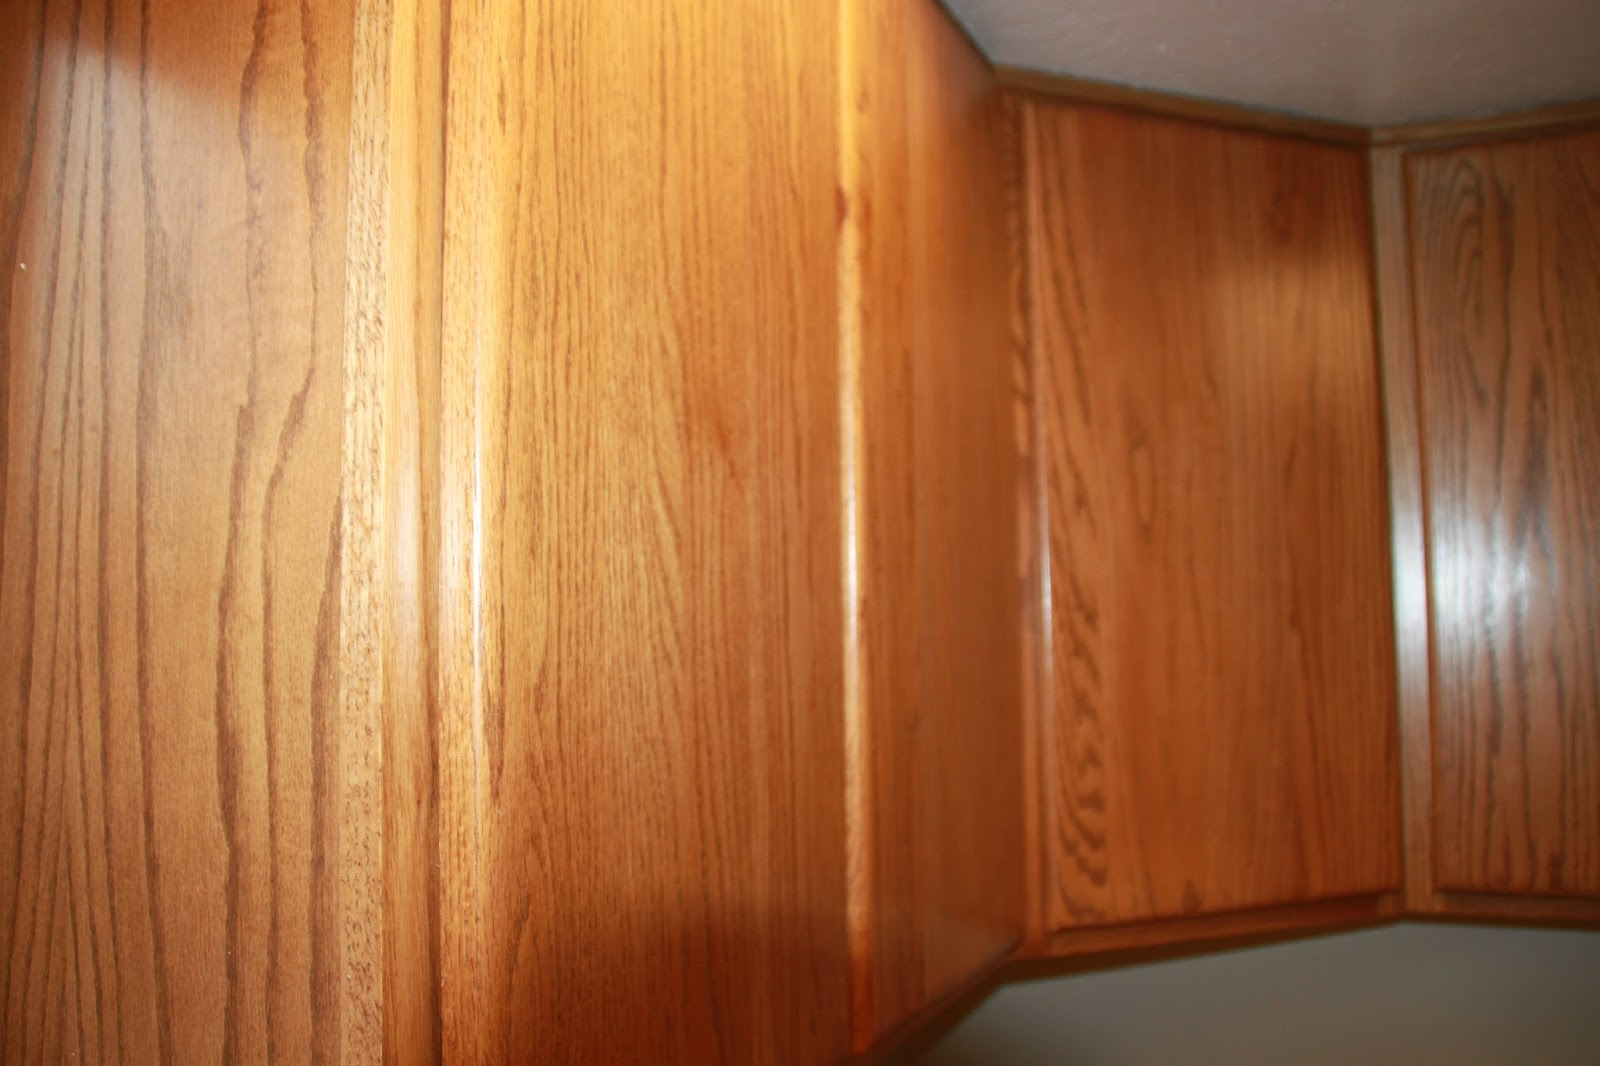 Also The Little Cutouts In The Cabinet Doors Were The Way We Opened The  Doors And Drawers. Although They Worked, We Knew Knobs And Pulls Would ...